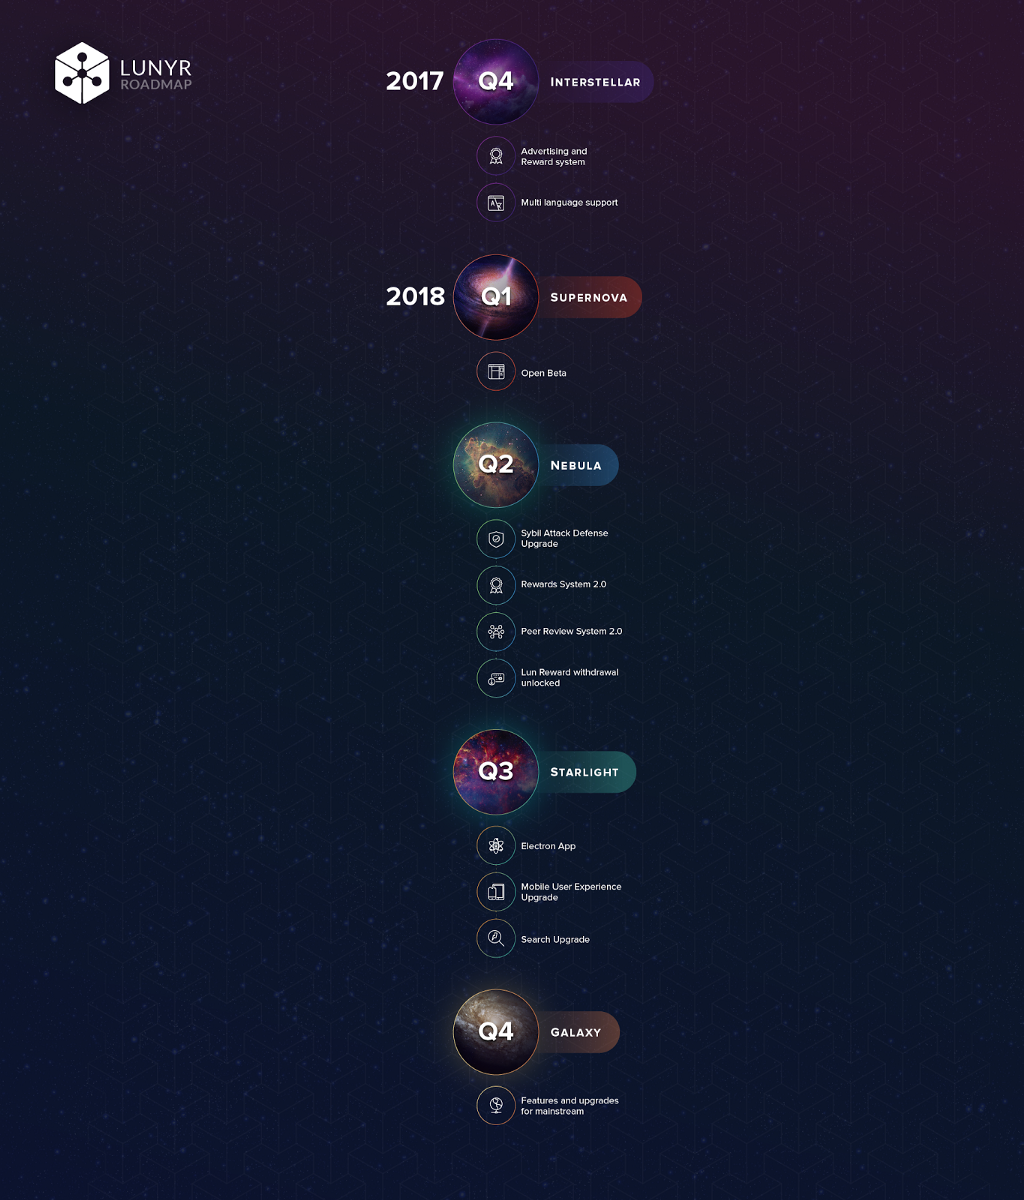 Lunyr roadmap